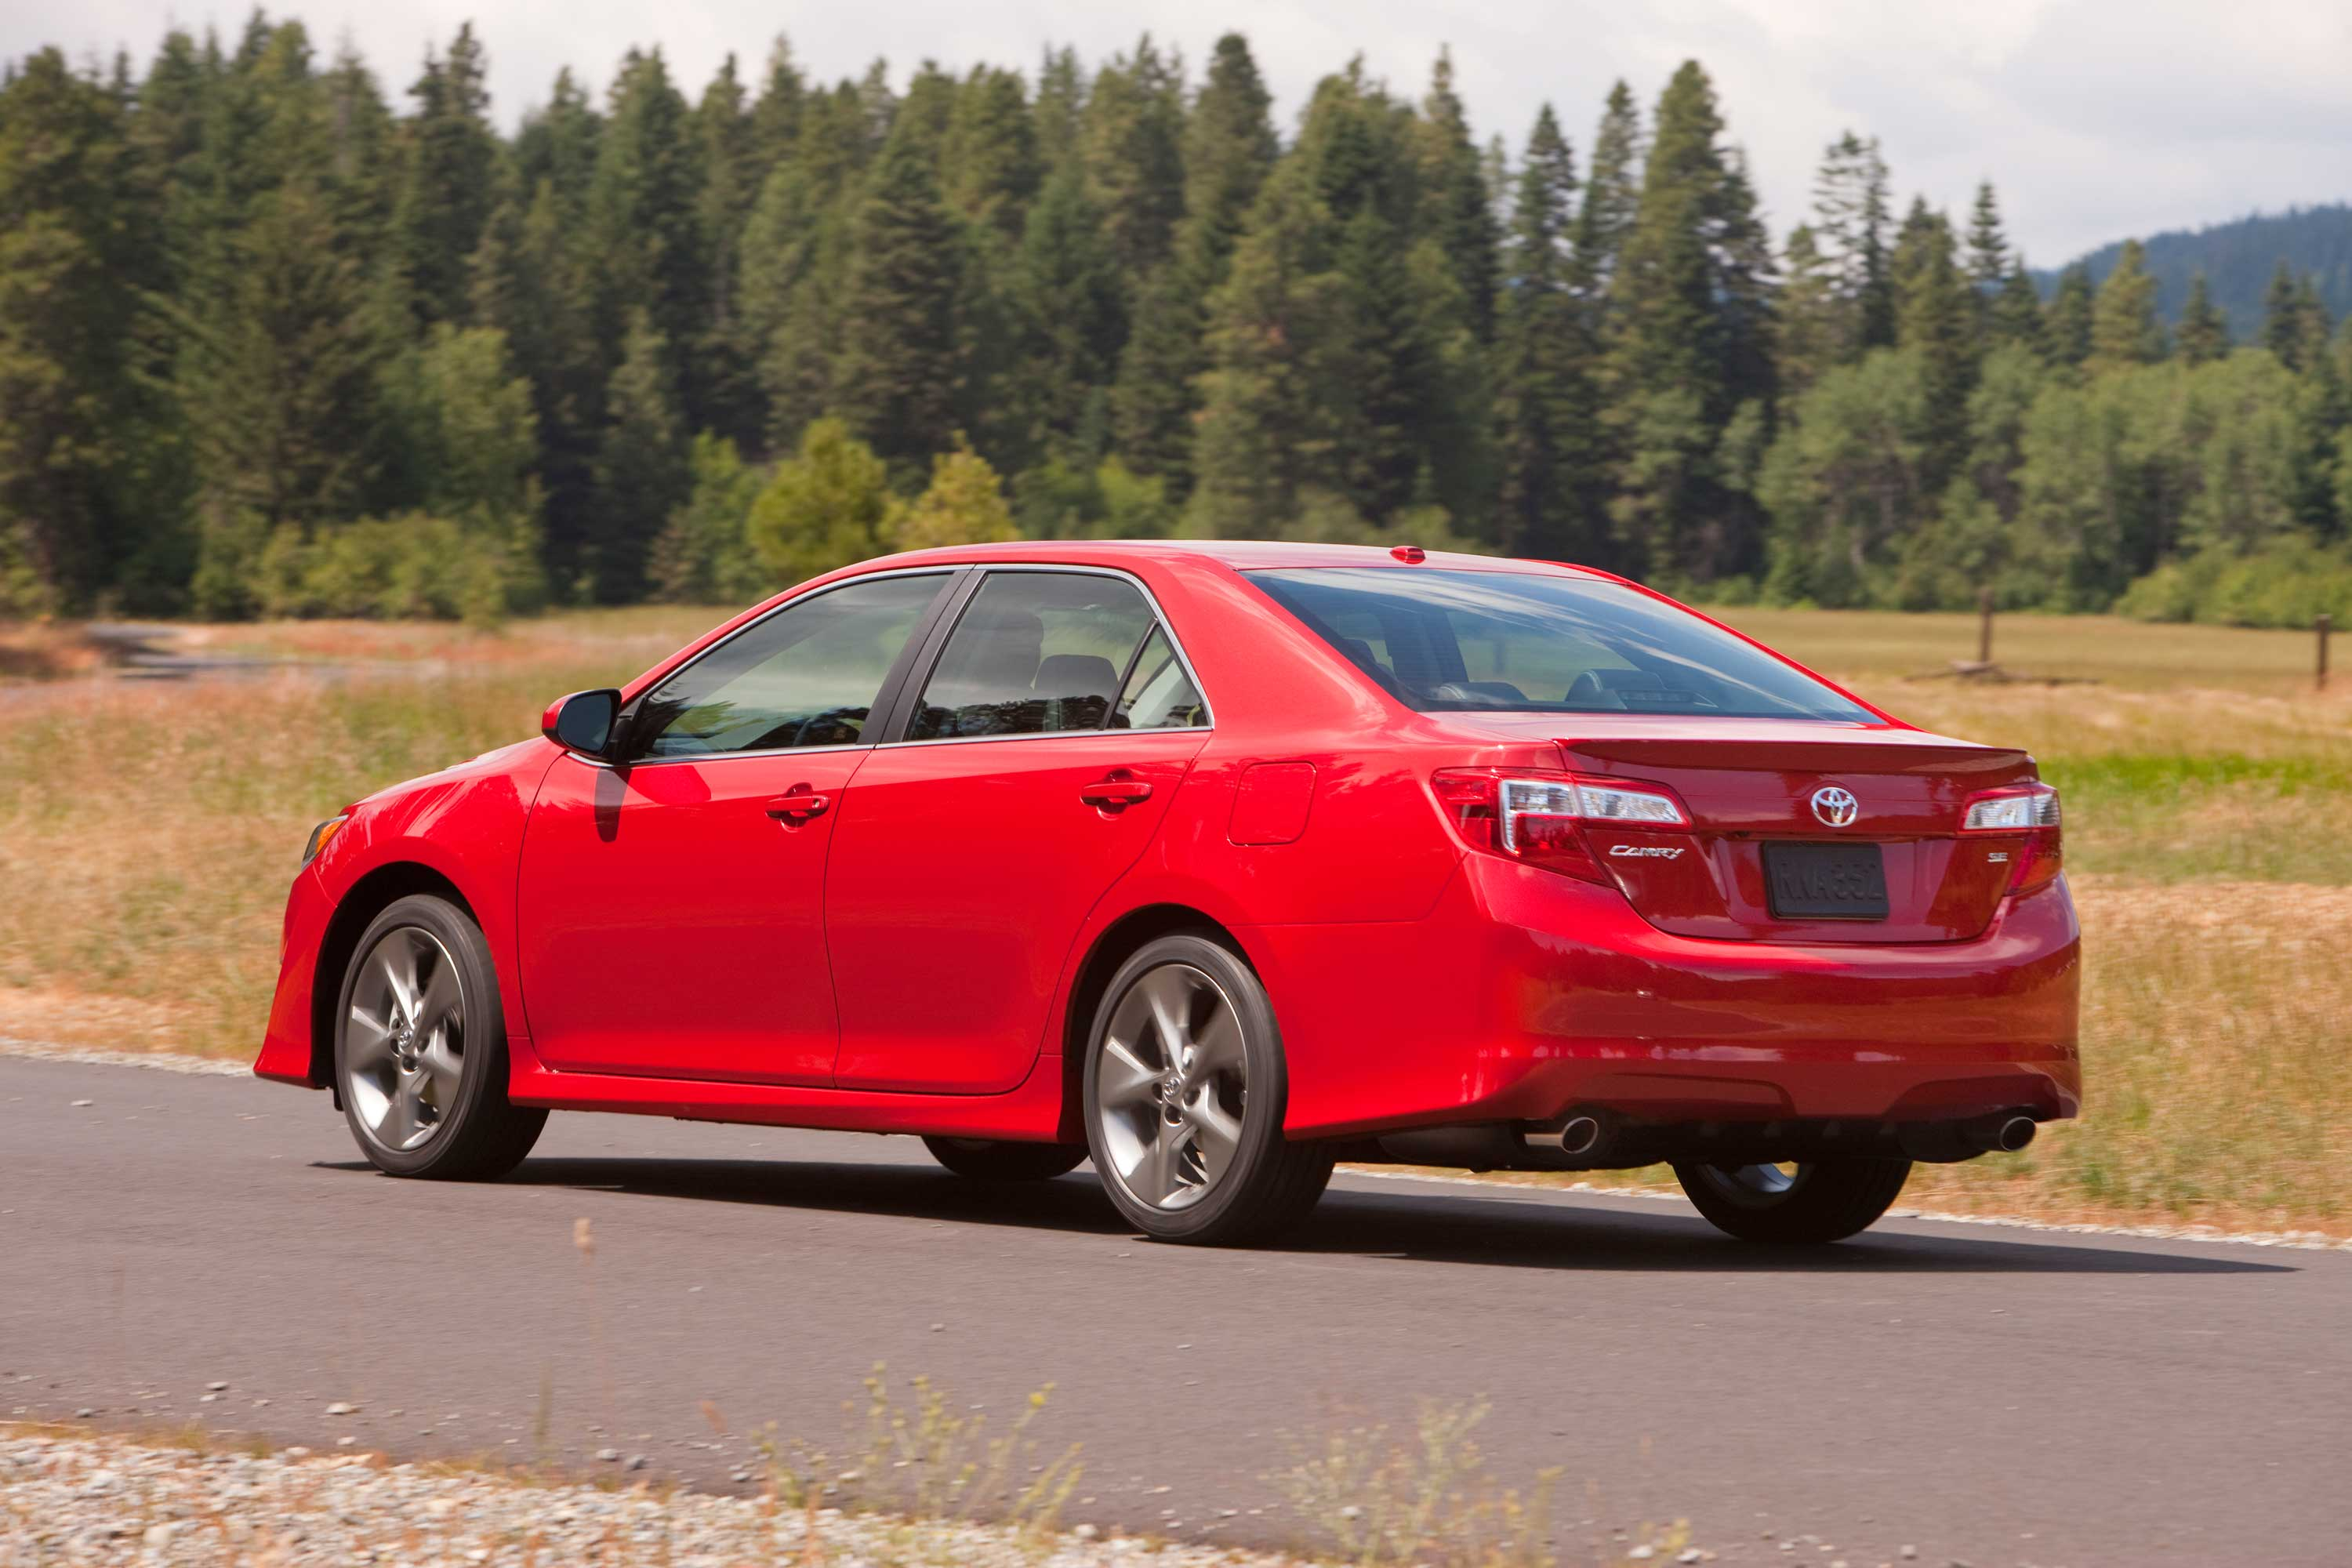 Toyota Recalls Camry, Avalon for Steering